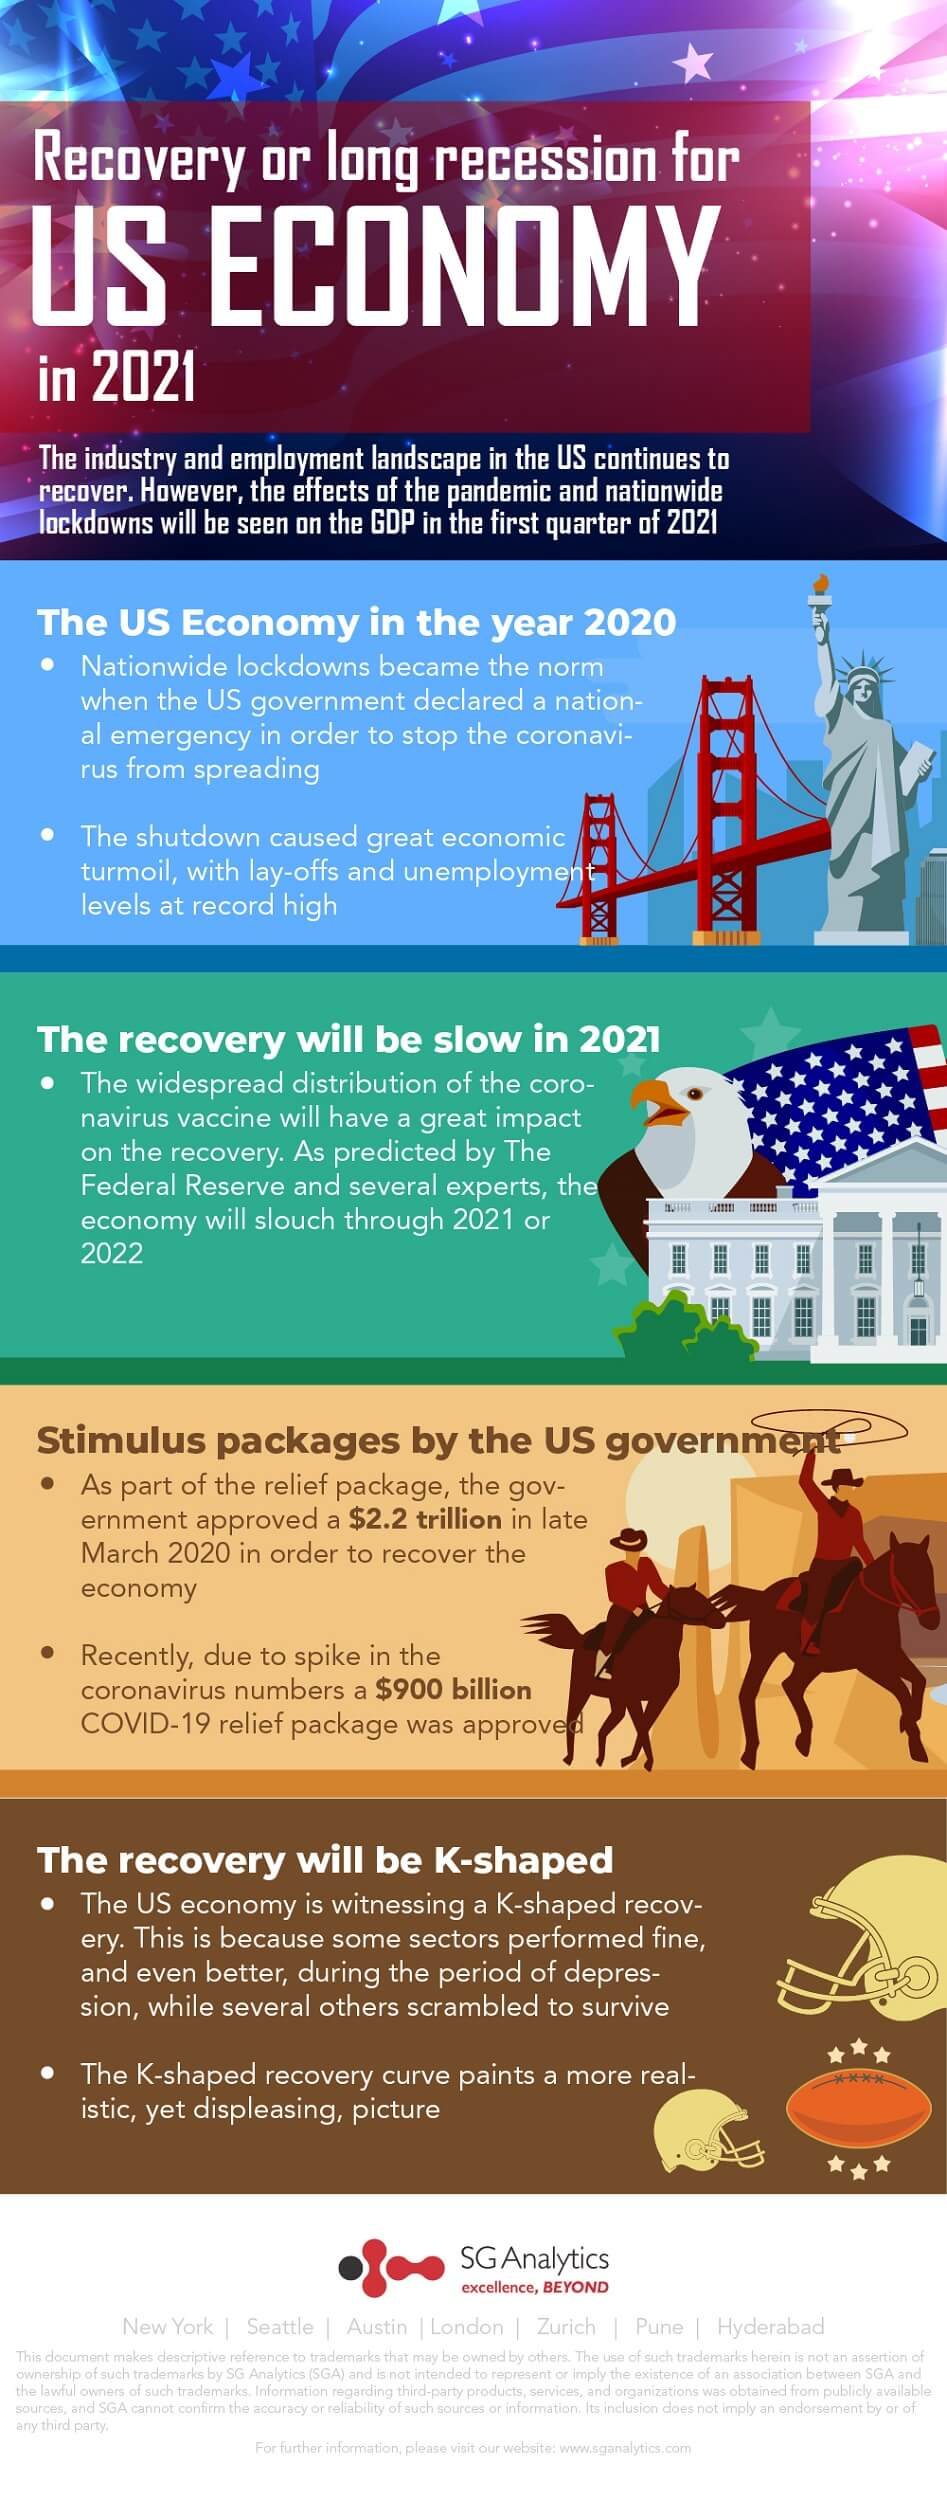 recovery or long recession for US economy in 2021